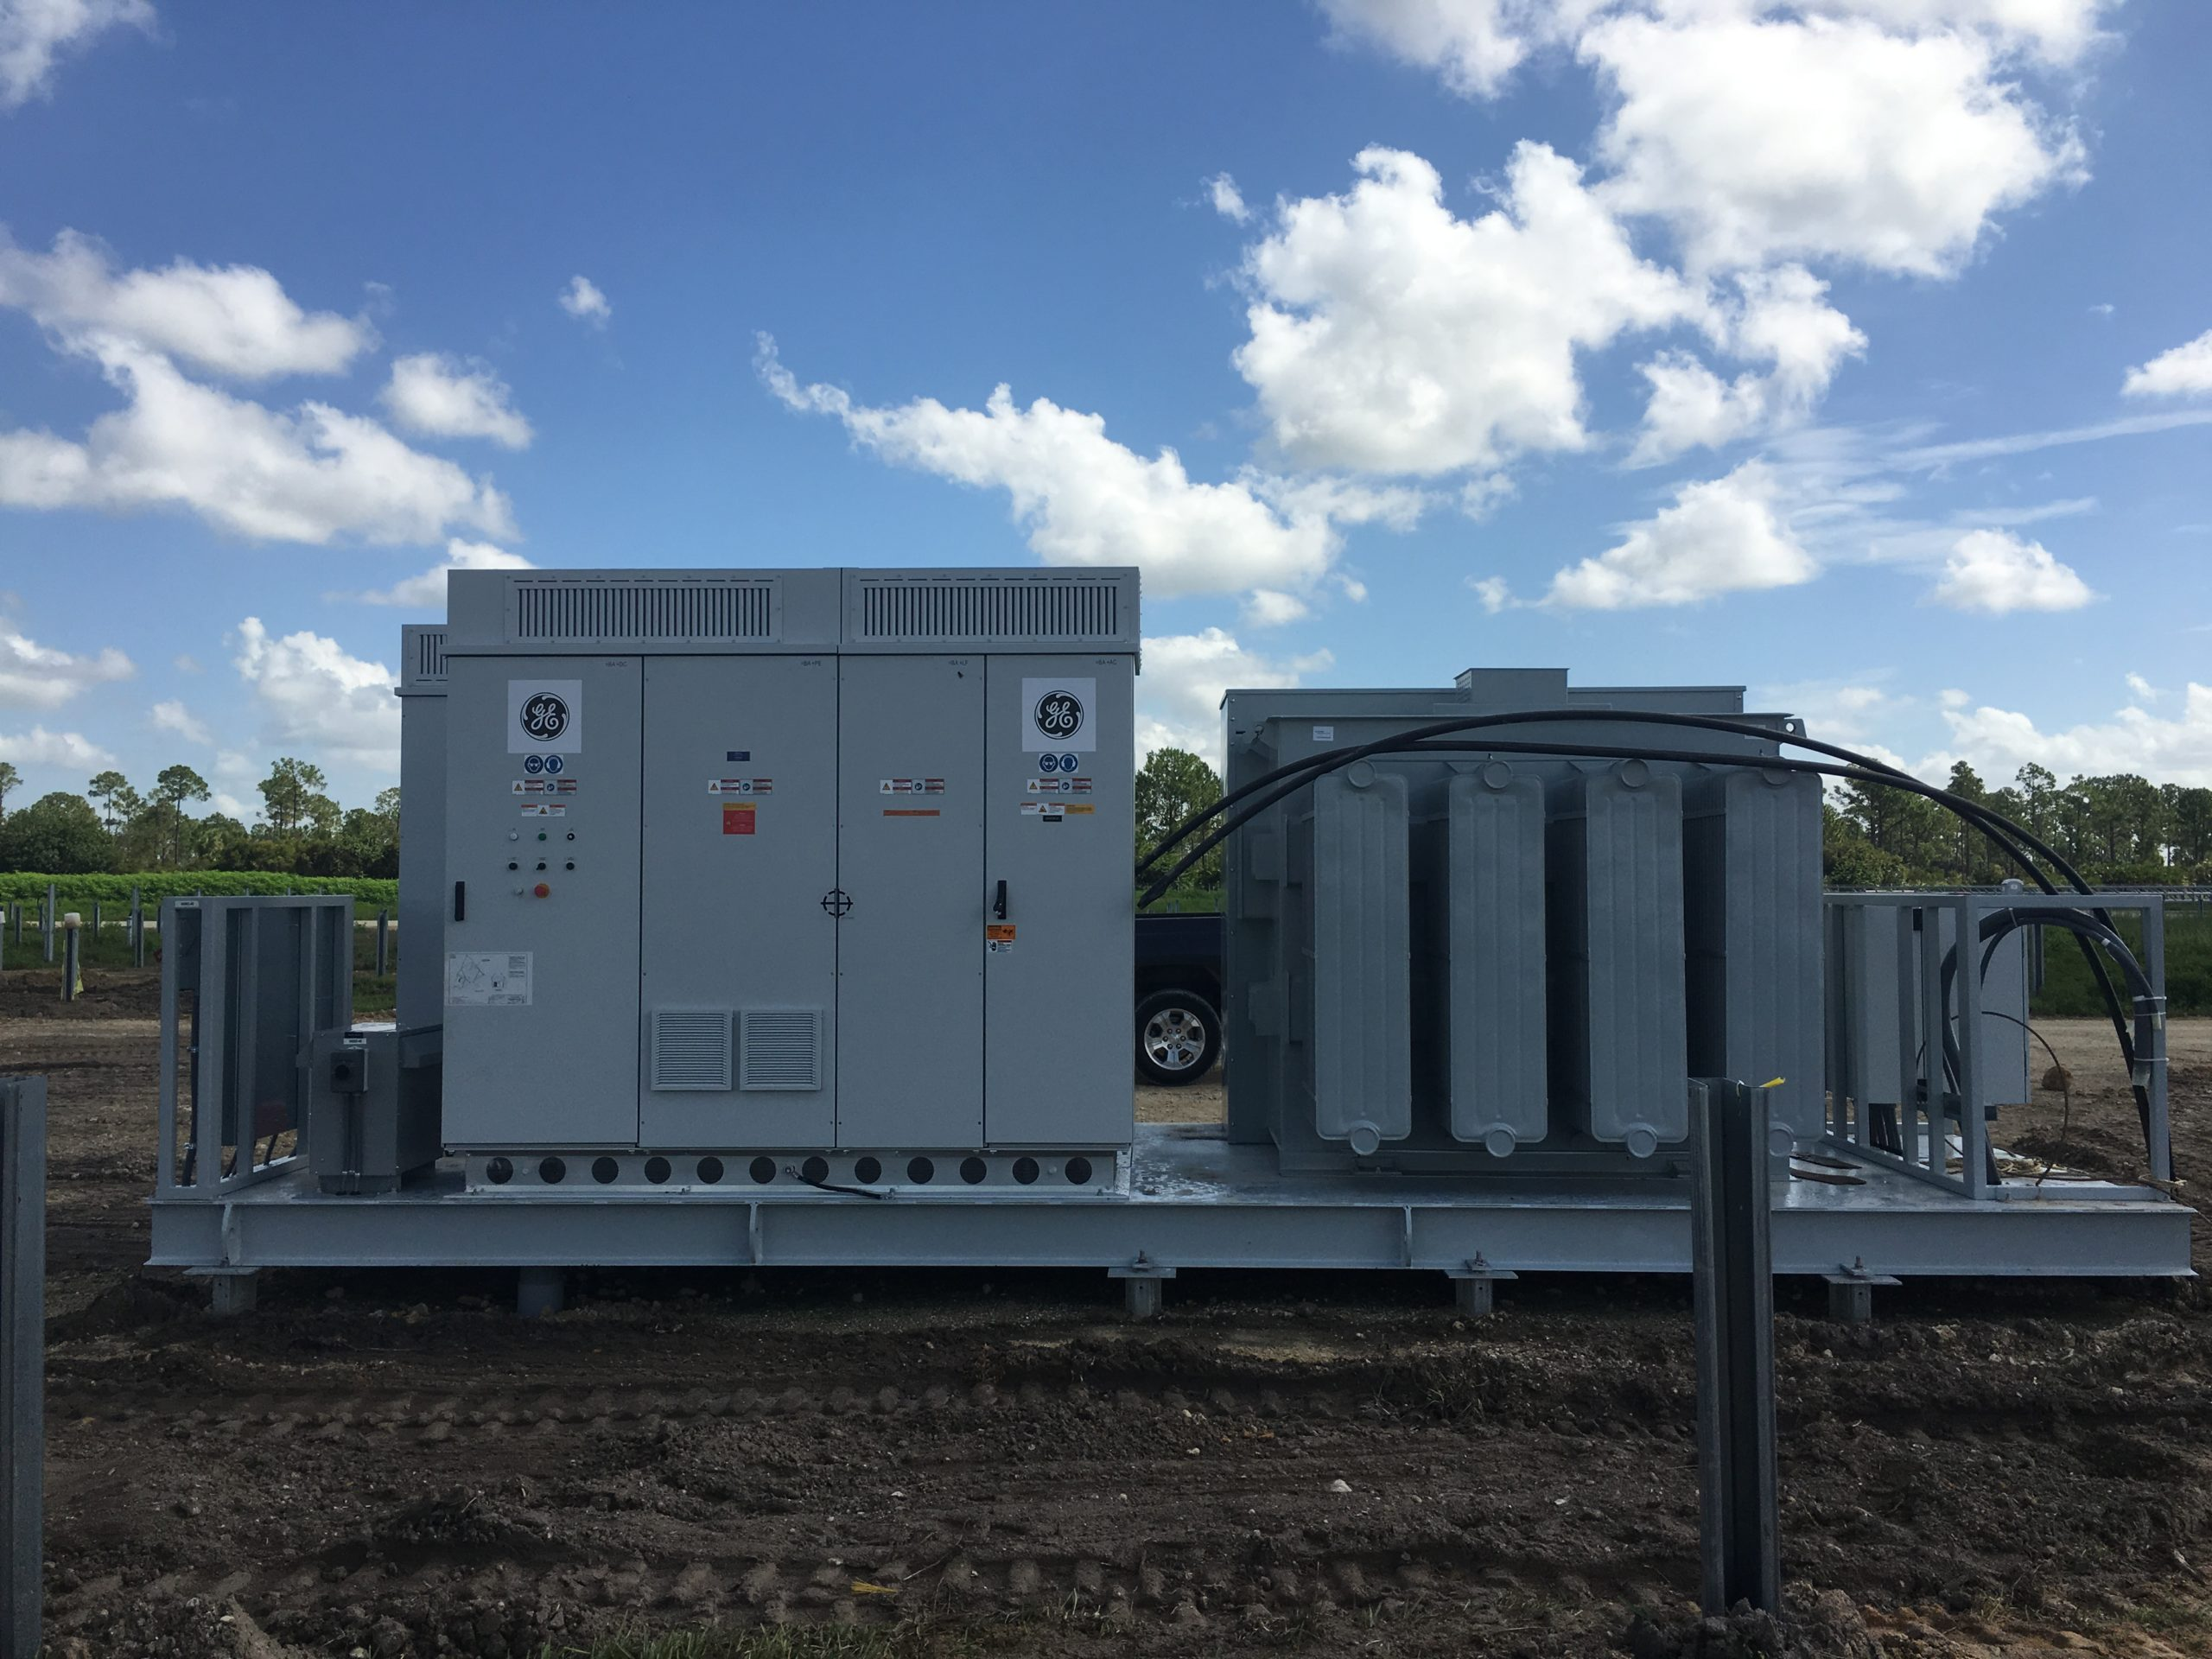 GE's LV5+ Solar Inverter has an efficiency rating of 99% weighted EU which allows for higher annual energy production, when compared to today's traditional inverters. Image: GE Energy